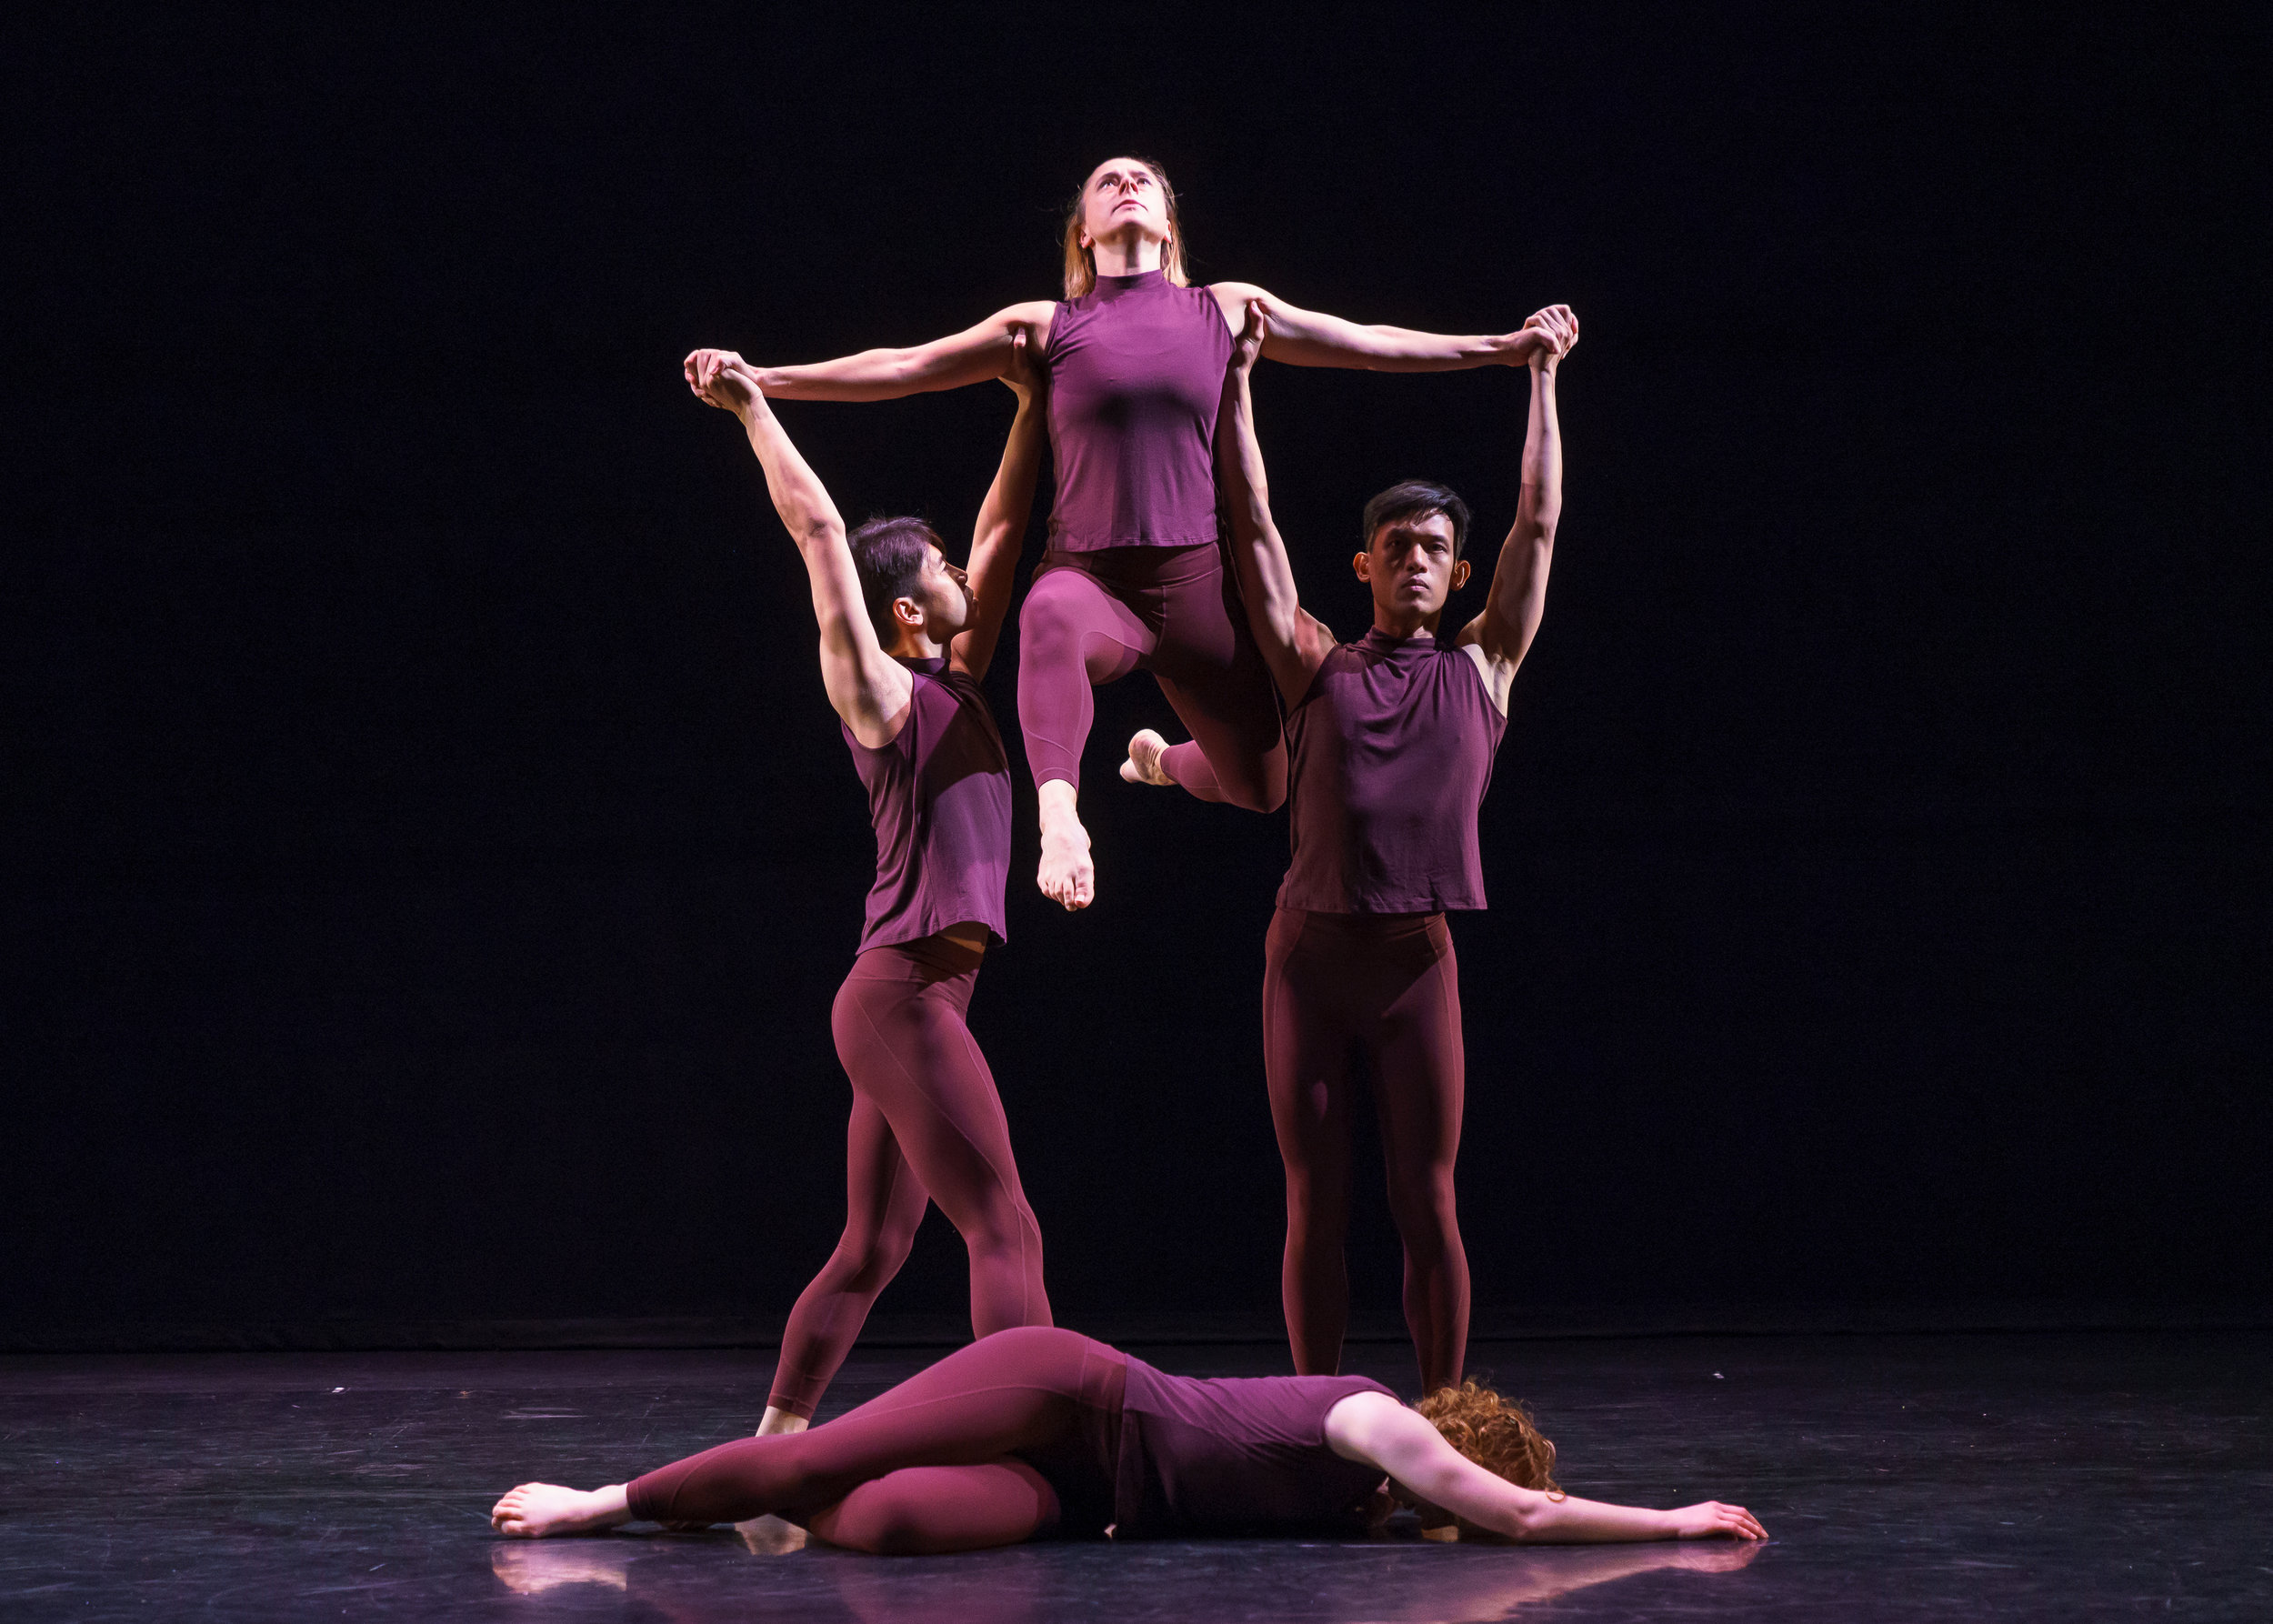 Erin performing with Sokolow Theatre Dance Ensemble in 2018. Photo by Steven Pisano